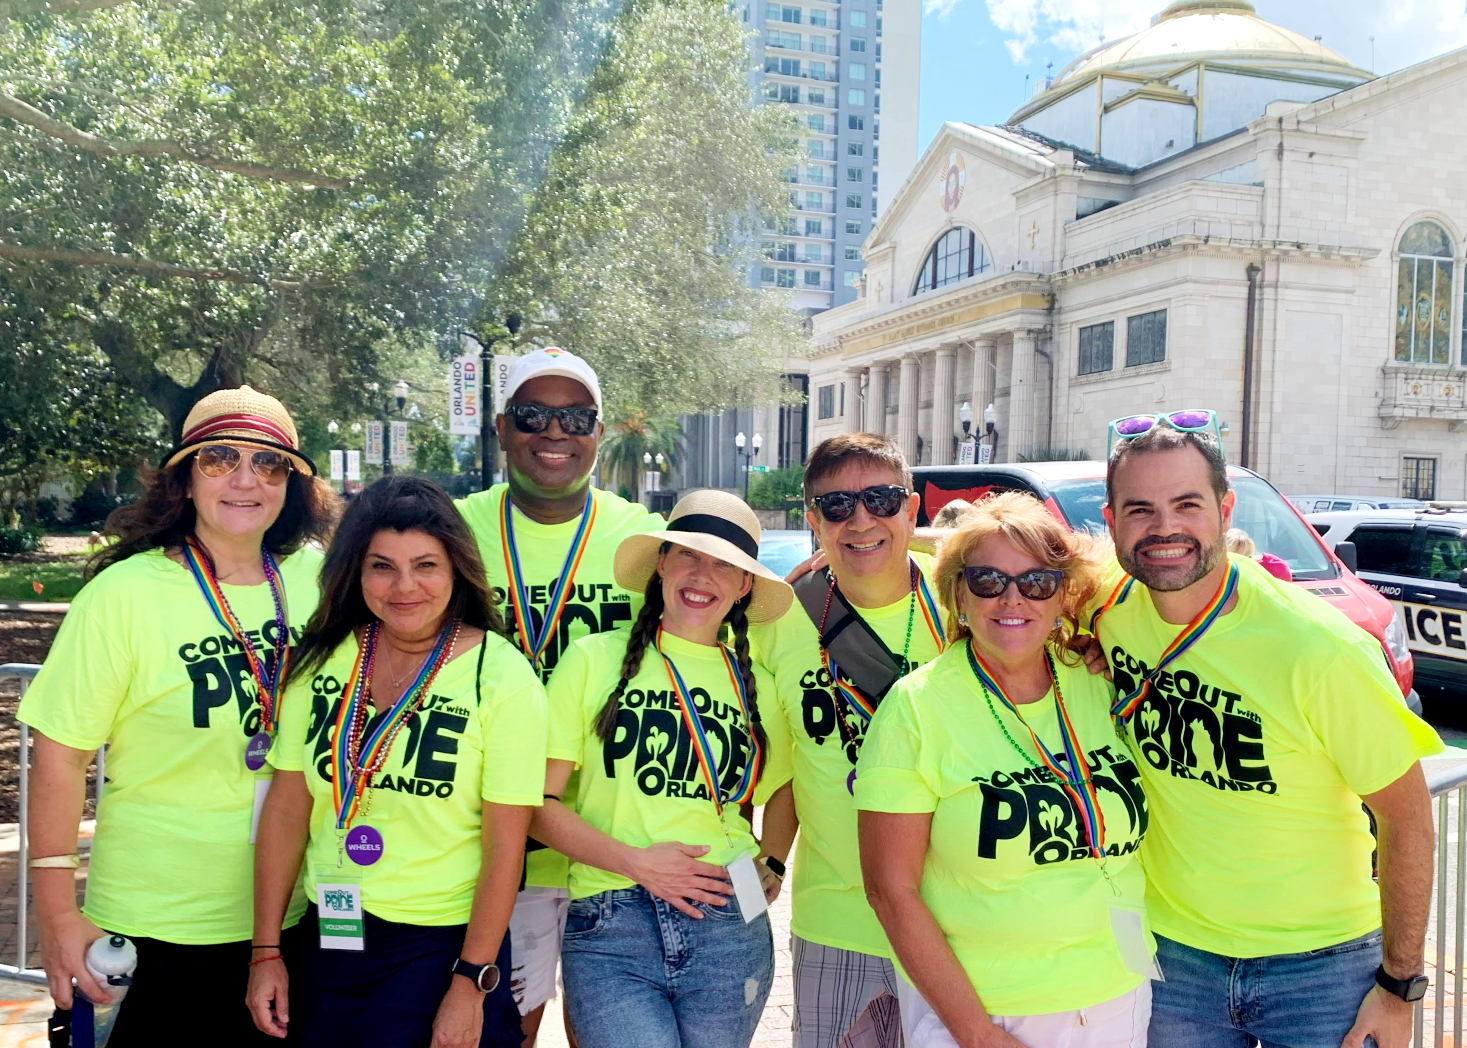 Visit Orlando staff volunteering at Come Out With Pride